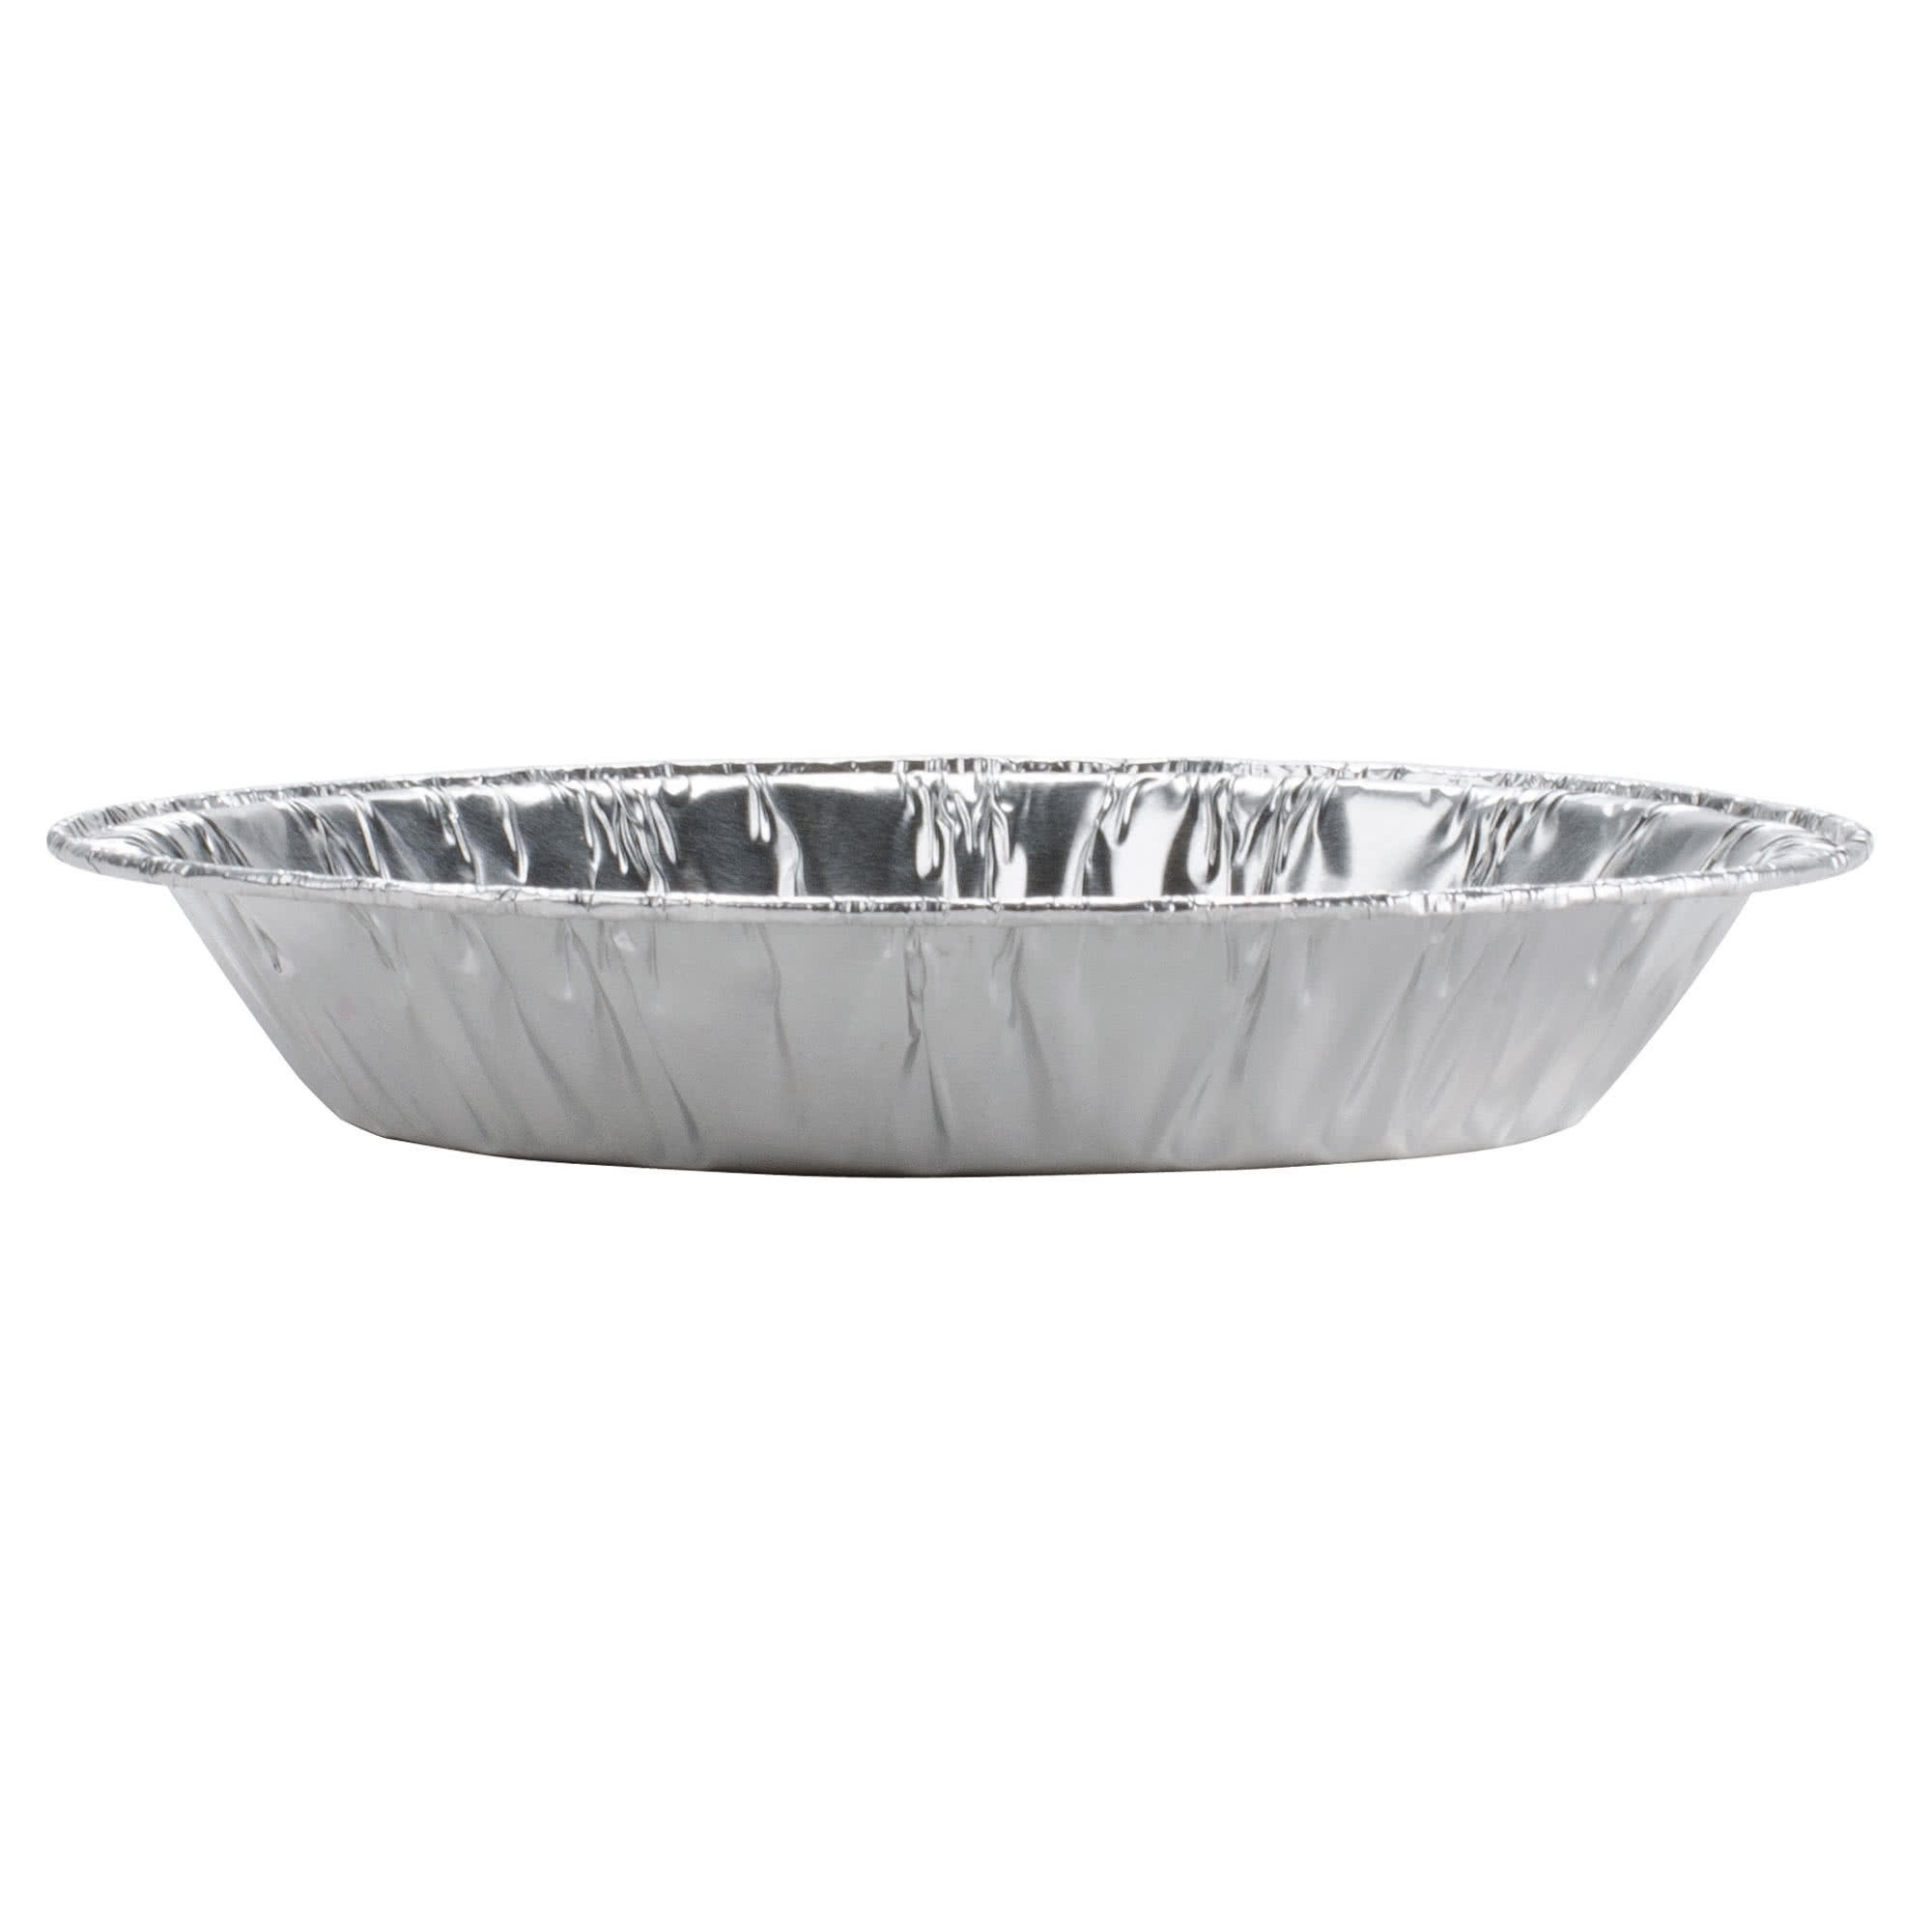 6'' x 15/16'' Medium Depth Foil Pie Pan - 1000/Case By TableTop King by TableTop King